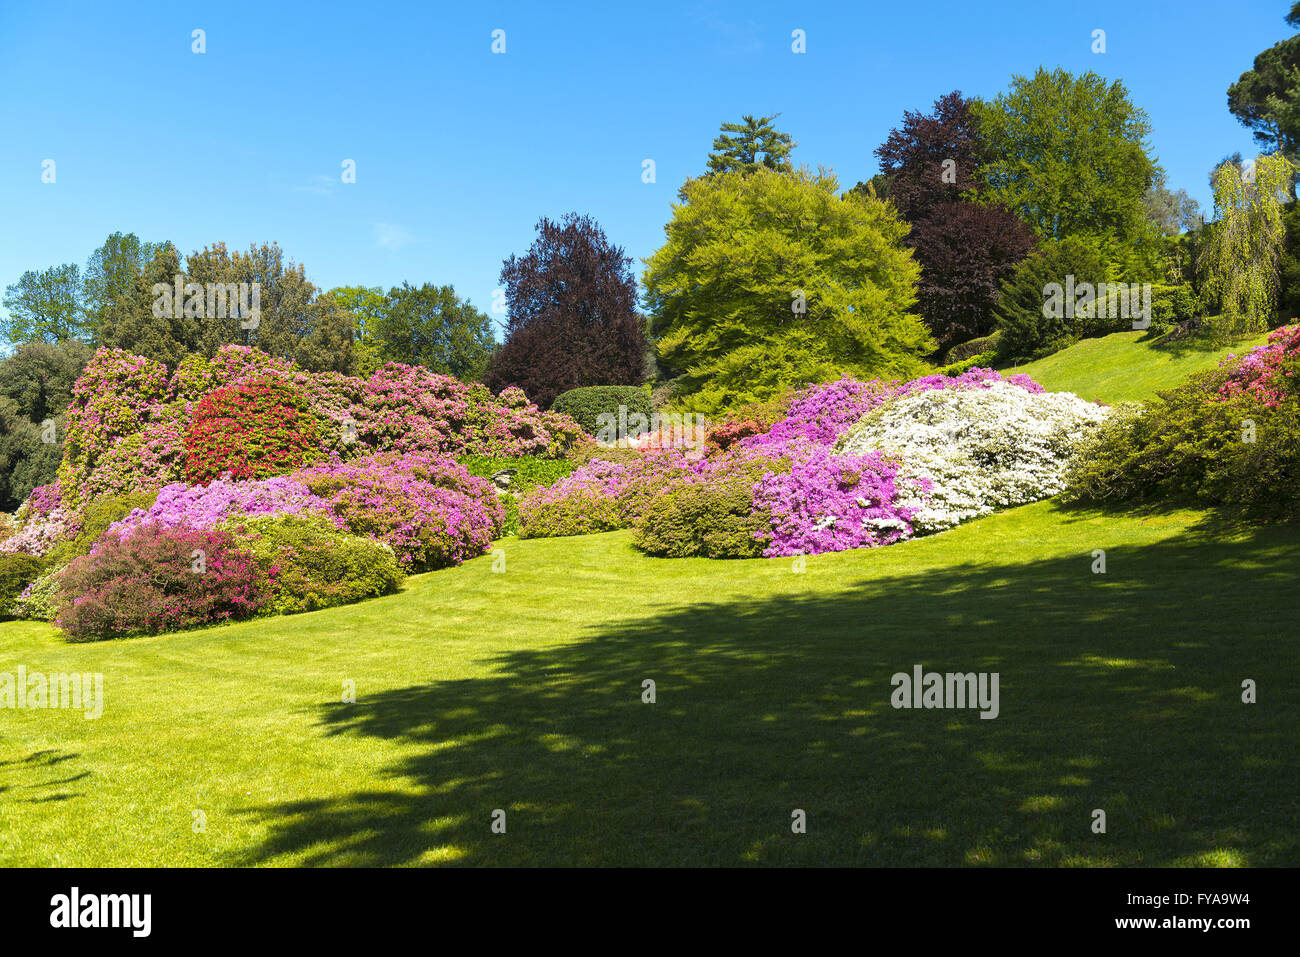 Landscape of gardens with trees and flowers of azalea in spring landscape of gardens with trees and flowers of azalea in spring season blue sky in background mightylinksfo Gallery